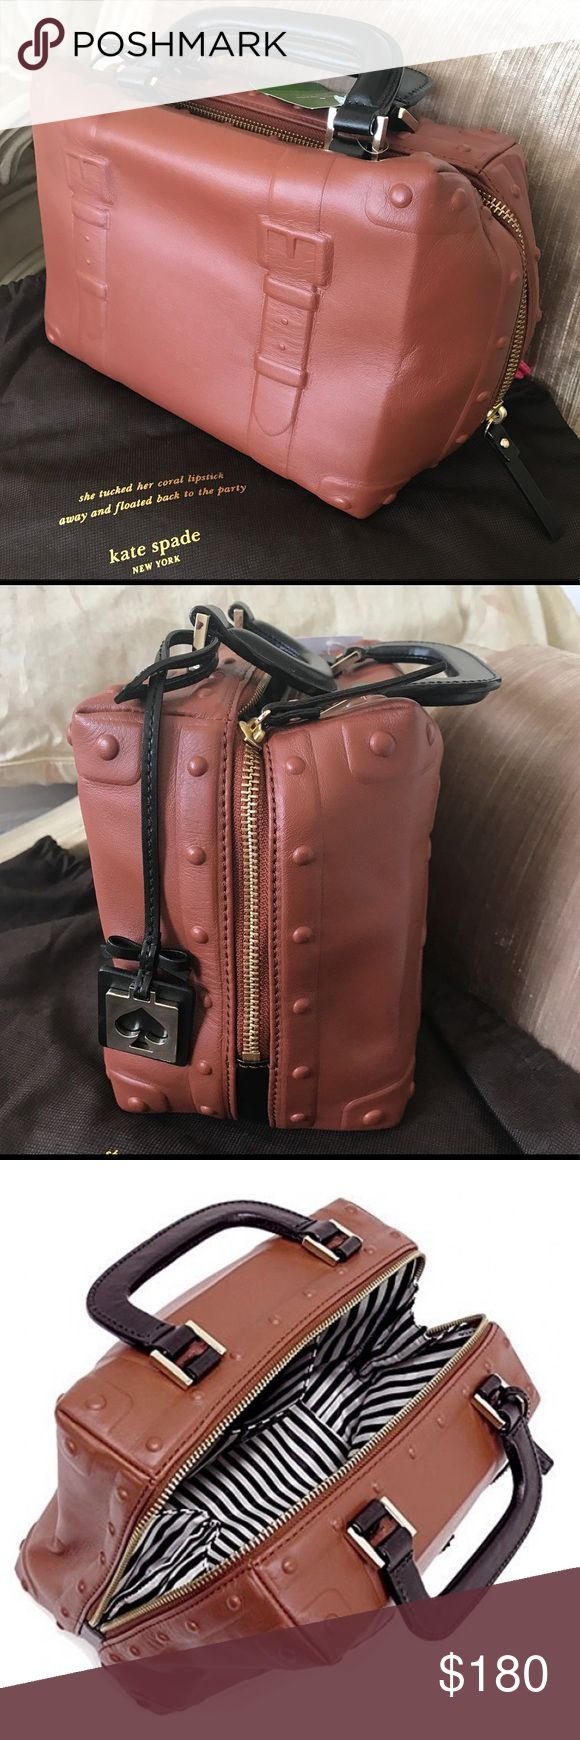 """NWT Kate Spade ♠️ Leather Tiny Trunk Handbag NWT Kate Spade ♠️ Leather Tiny Trunk:  ROAD TRIP DARKROAST WKRU2466 Collectible Design Top Zipper Guaranteed Authentic Sold out in stores Measures 9.25"""" x 7.25"""" x 5"""" Soft body Kate Spade Bags"""